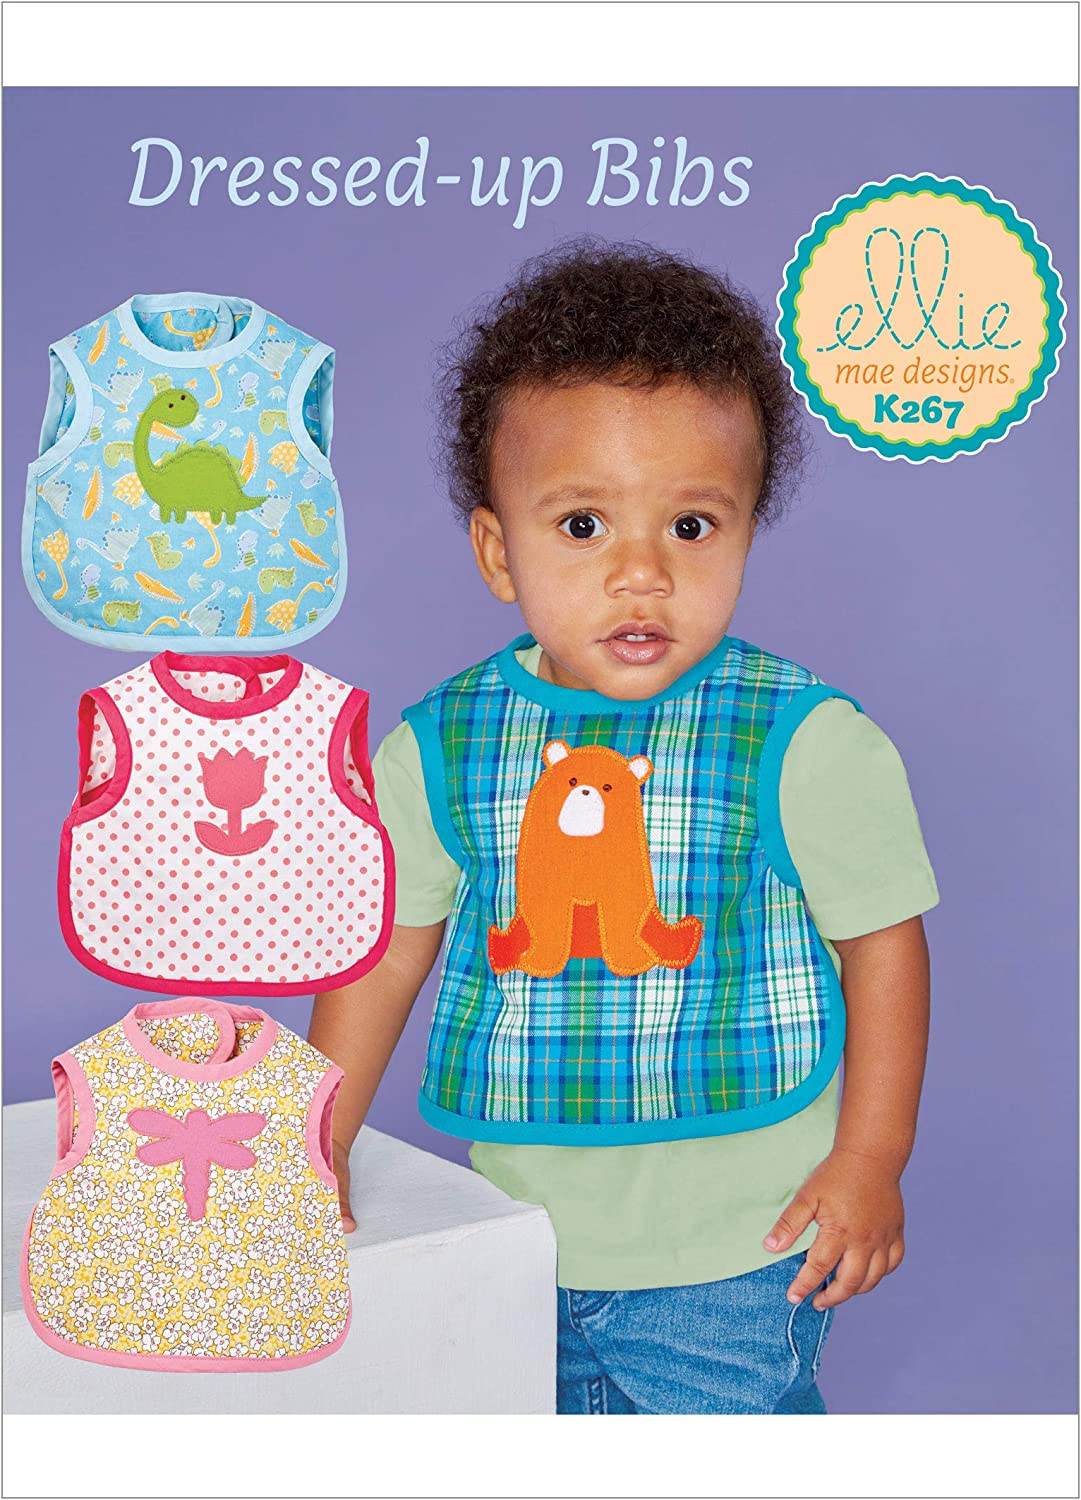 KWIK-SEW PATTERNS Kwik Baby Bib Sewing Pattern by Ellie Mage Designs, One Size Only